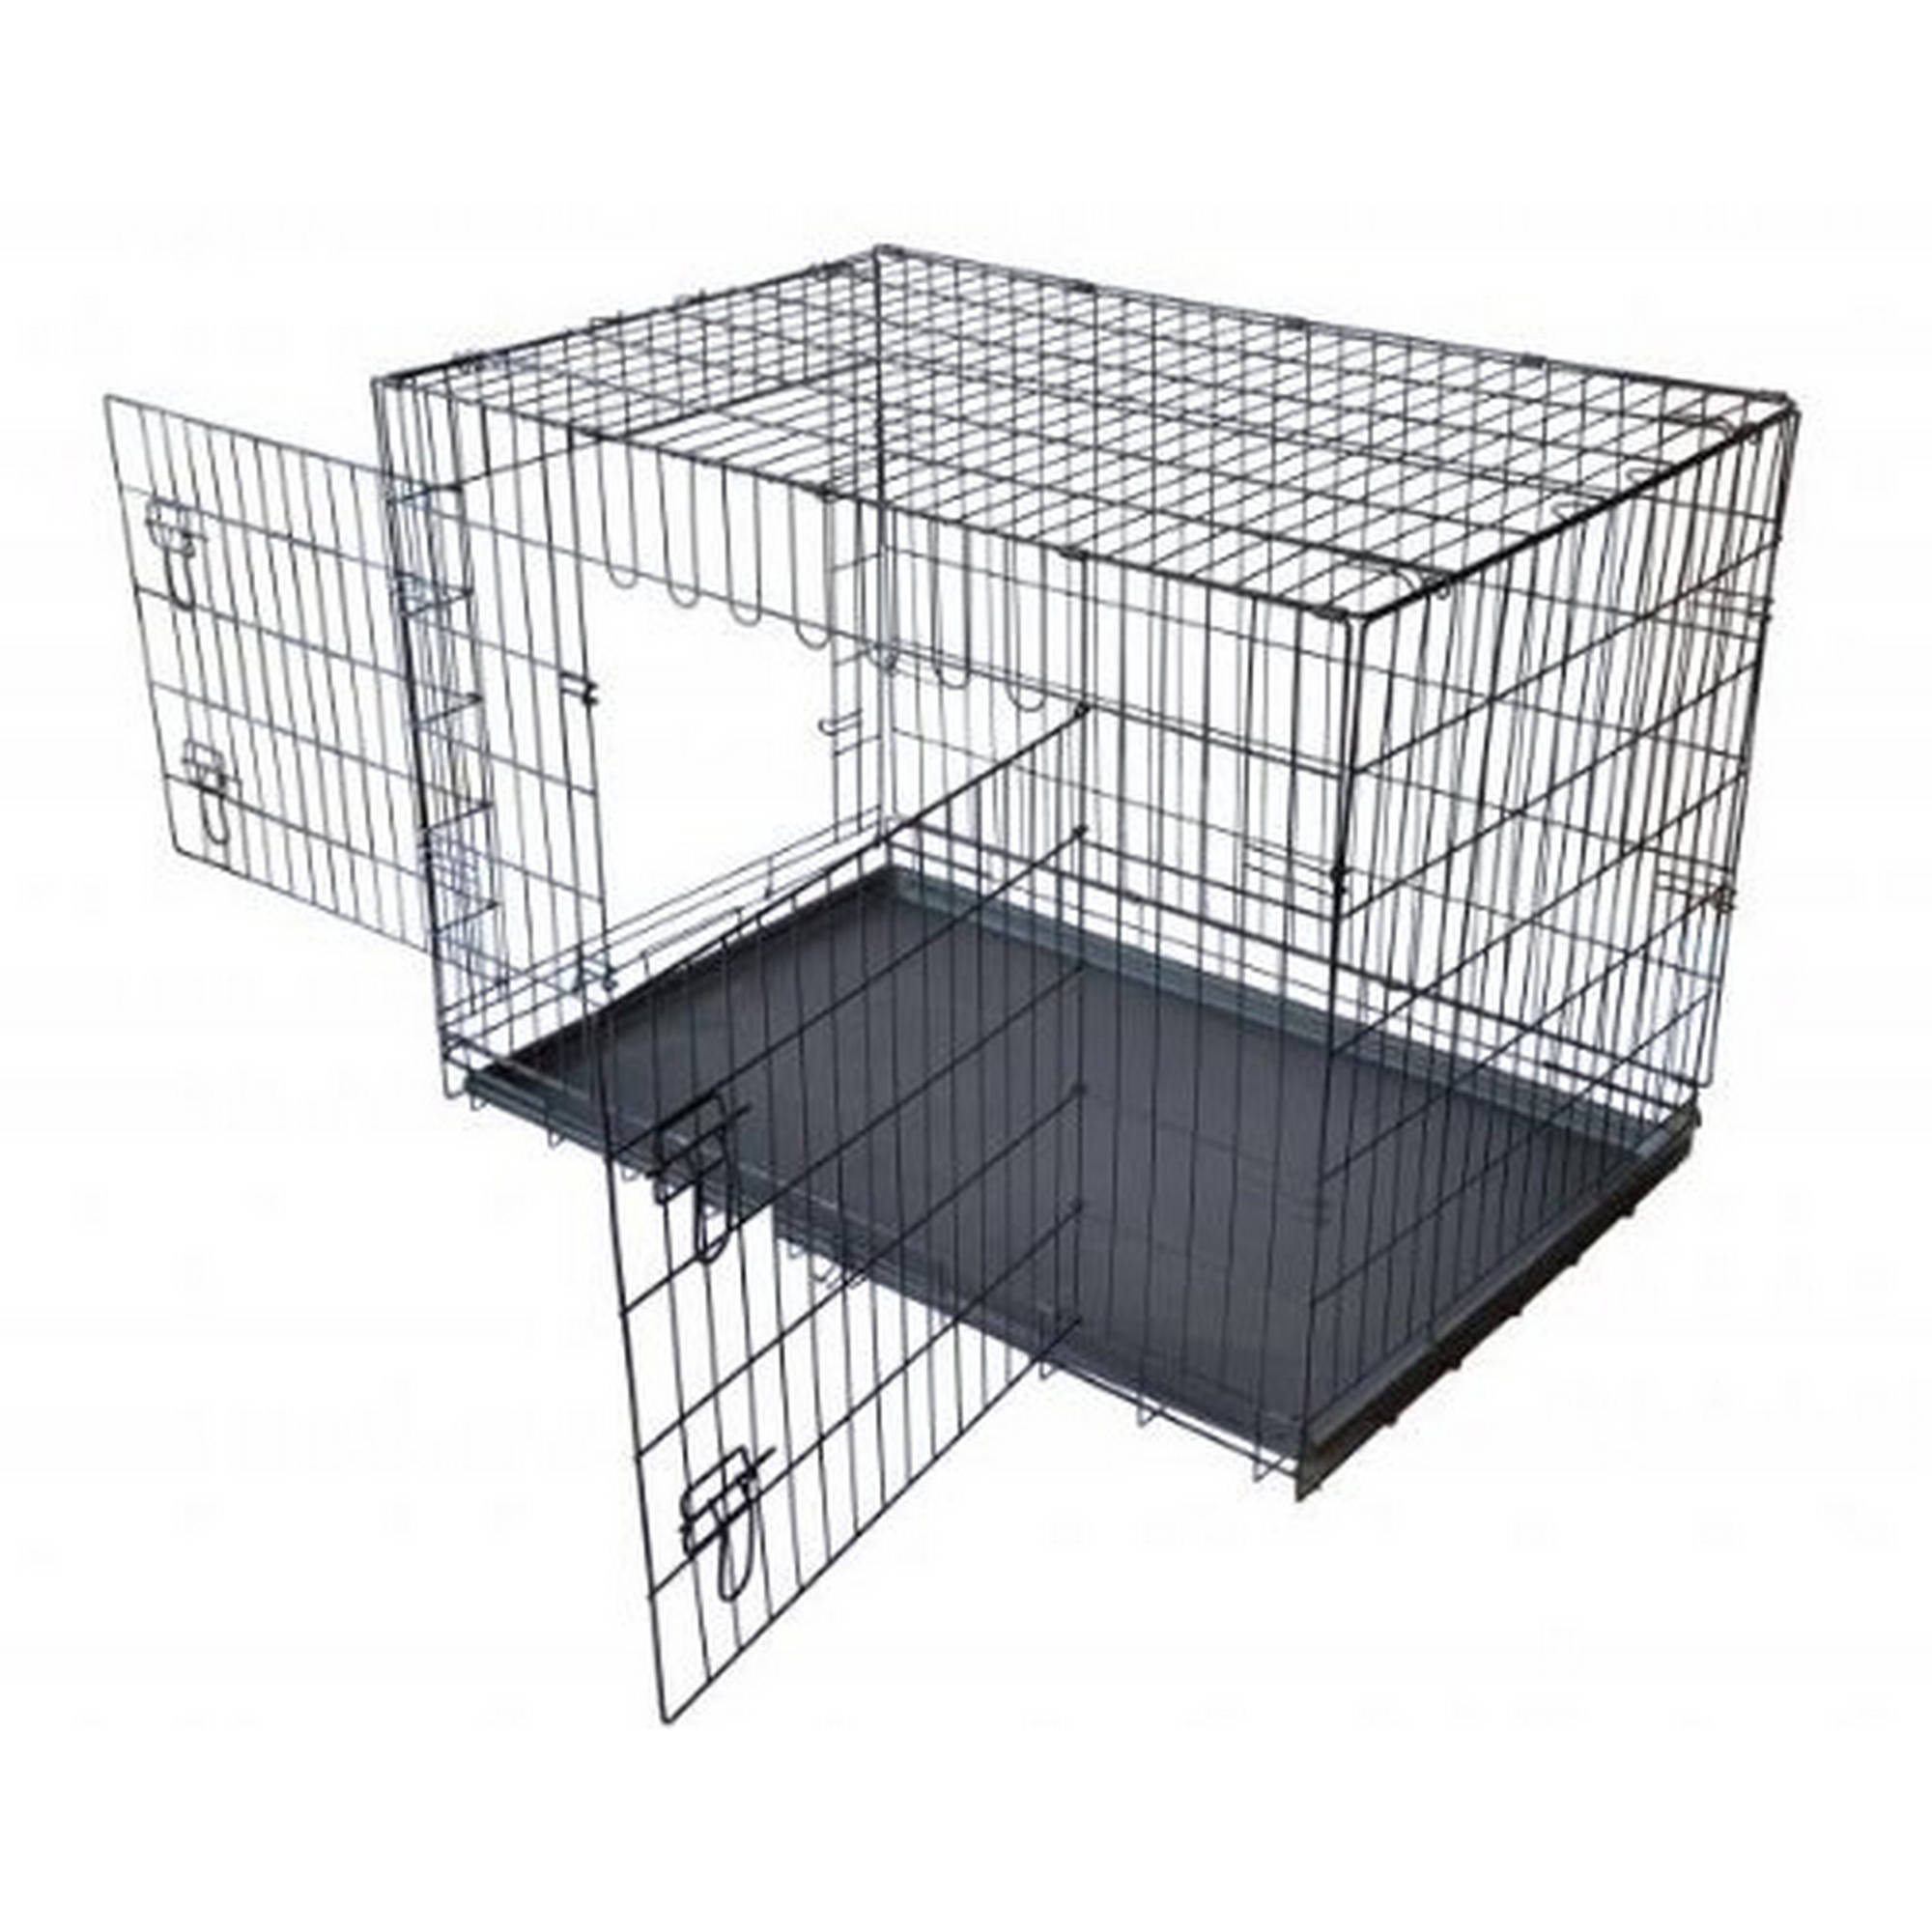 "Aleko SDC-2D-42B Wire Mesh Dog Cage 42"" Black, 2 Door"